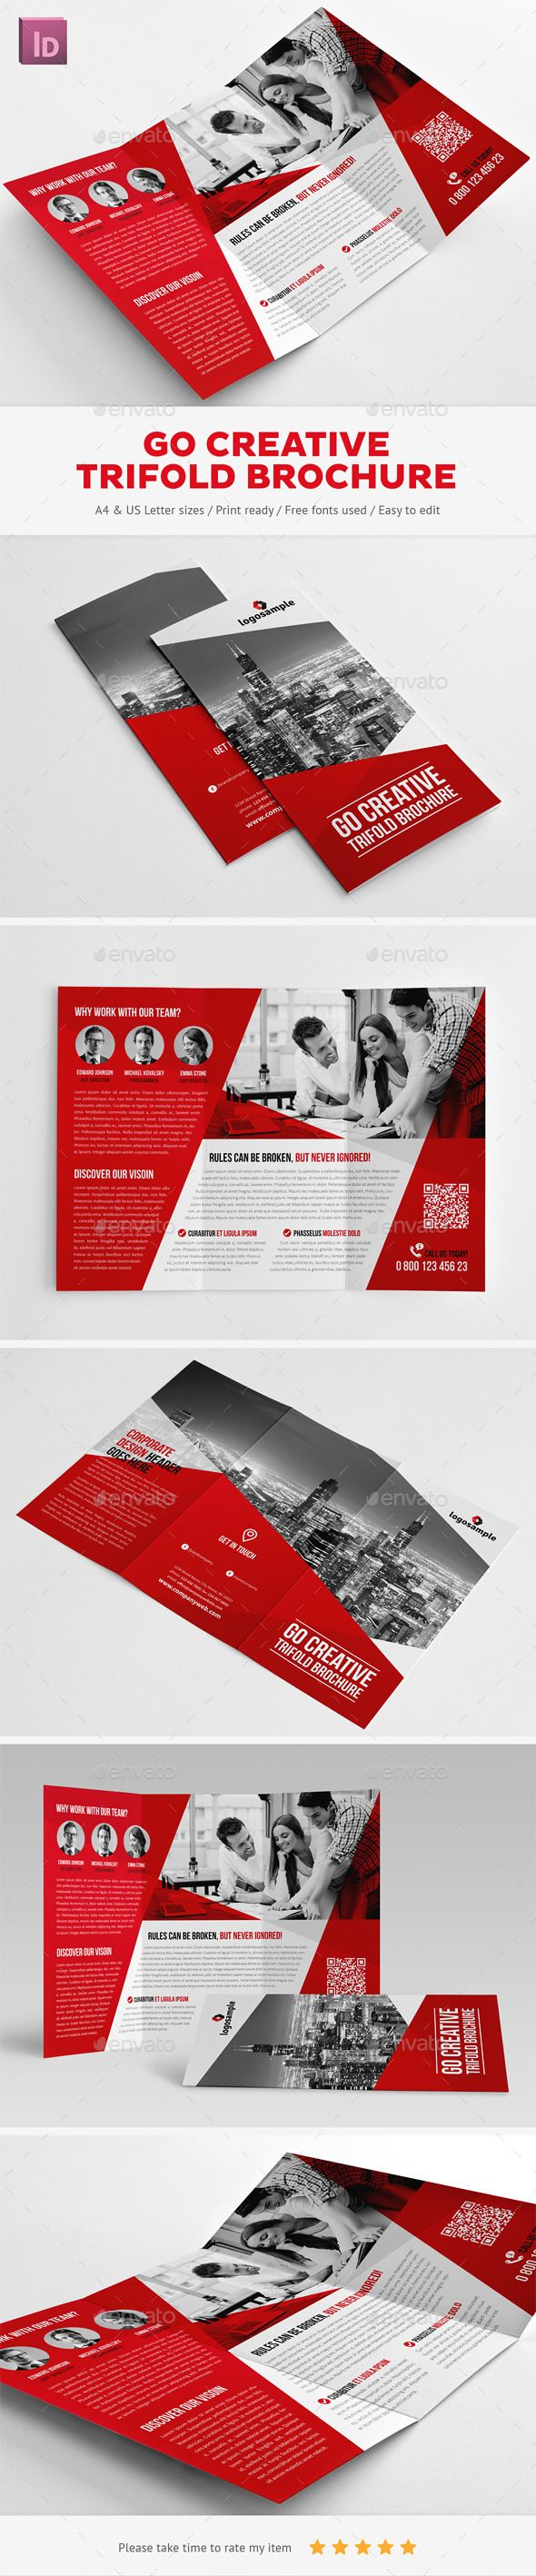 Creative Trifold Brochure Template #brochure Download: http://graphicriver.net/item/go-creative-trifold-brochure/11477894?ref=ksioks